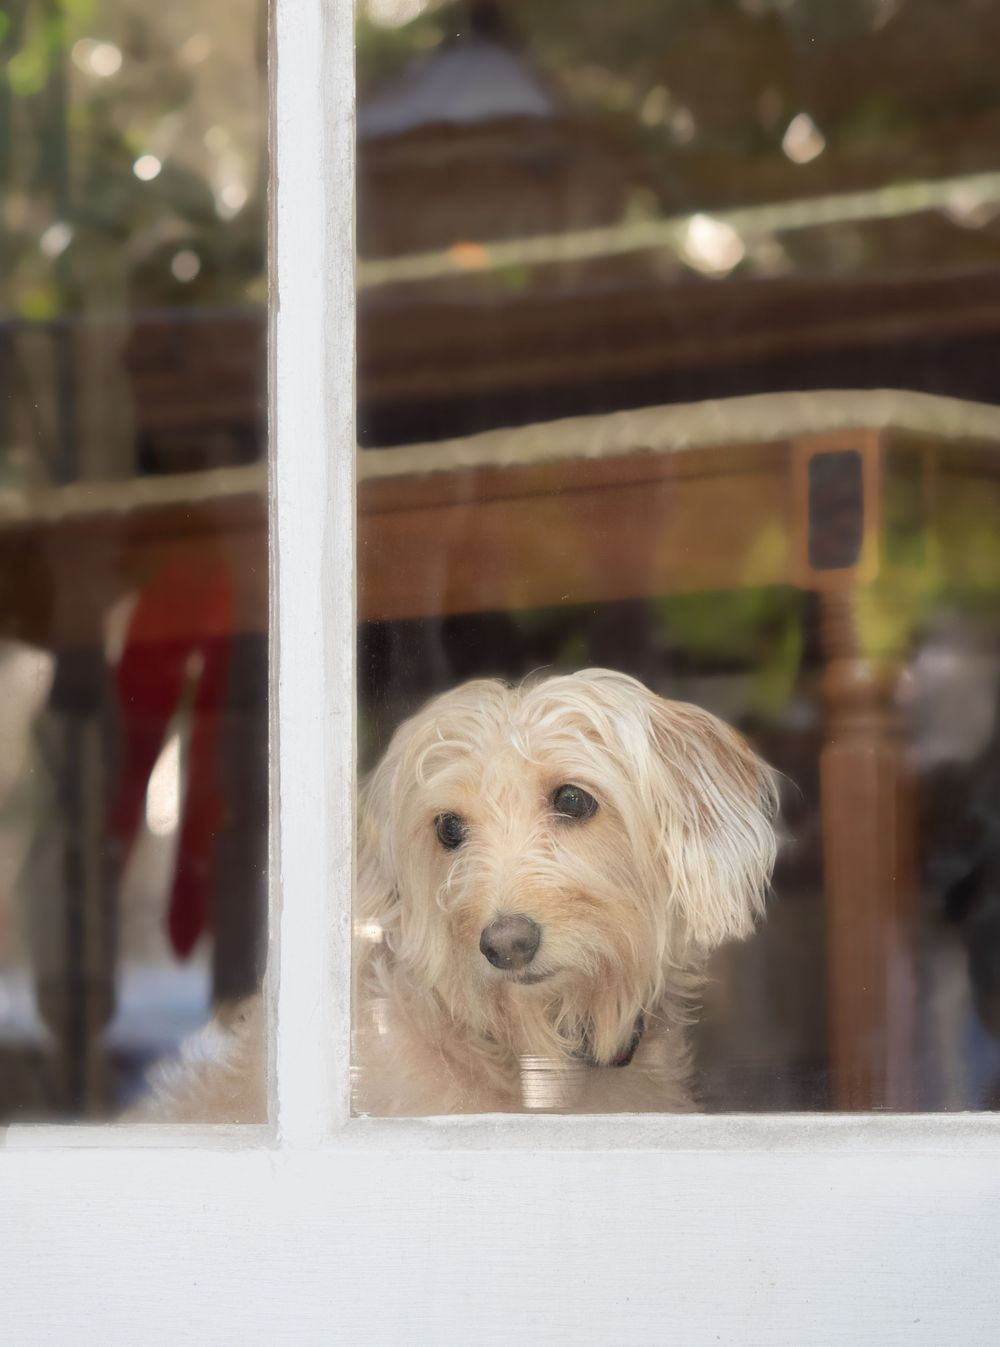 Pet Photography by Leslie Argote of White Terrier Mixed Breed Rescue Dog looking through the window